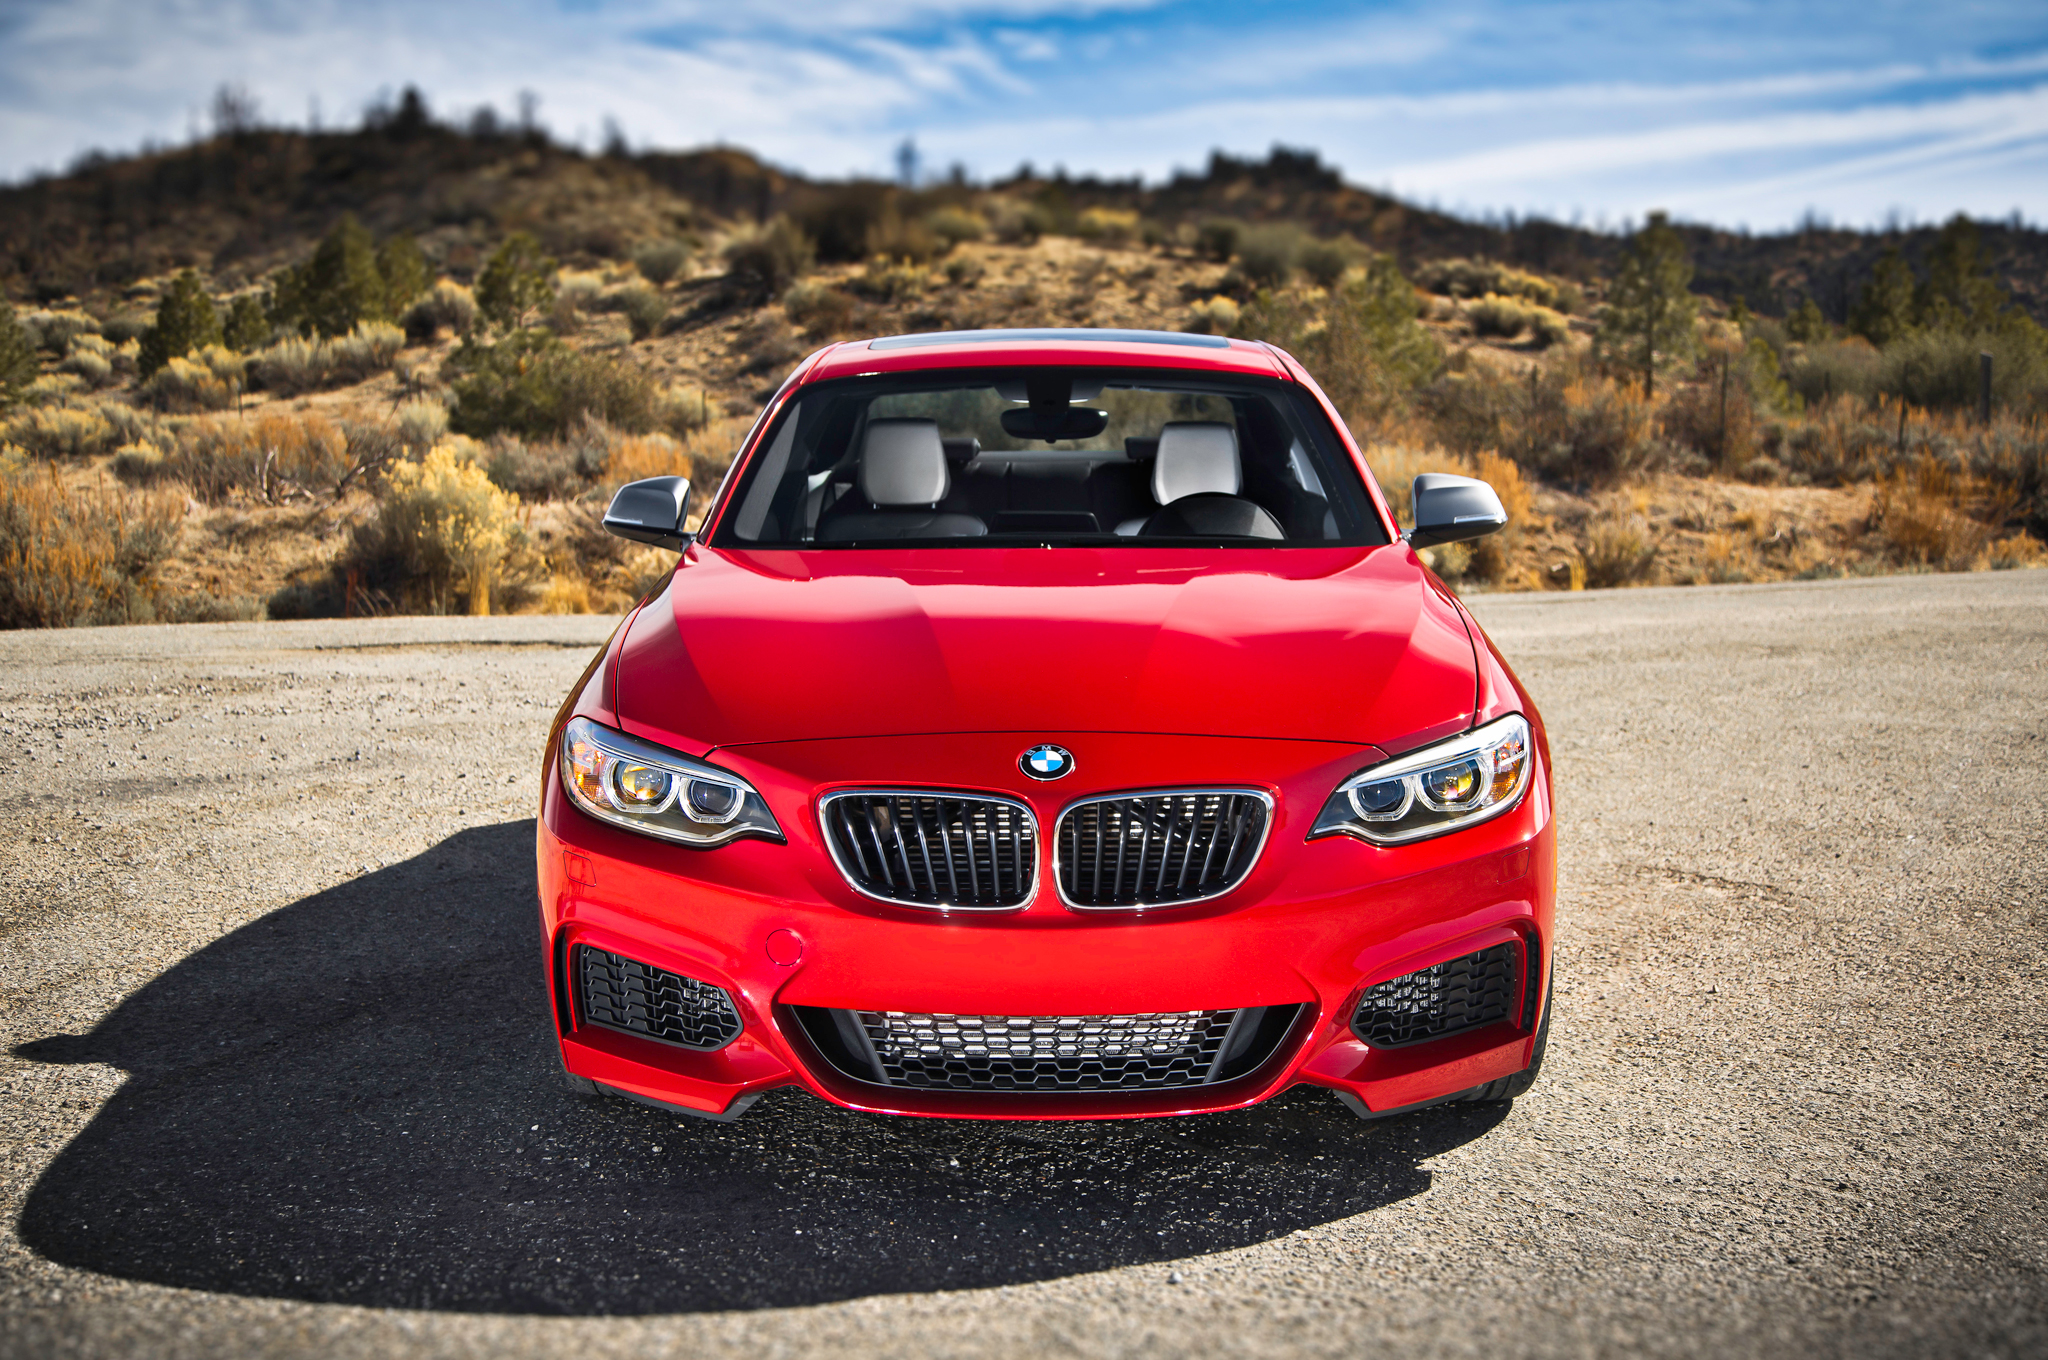 2014 BMW M235i Pictures Gallery (8 Images)